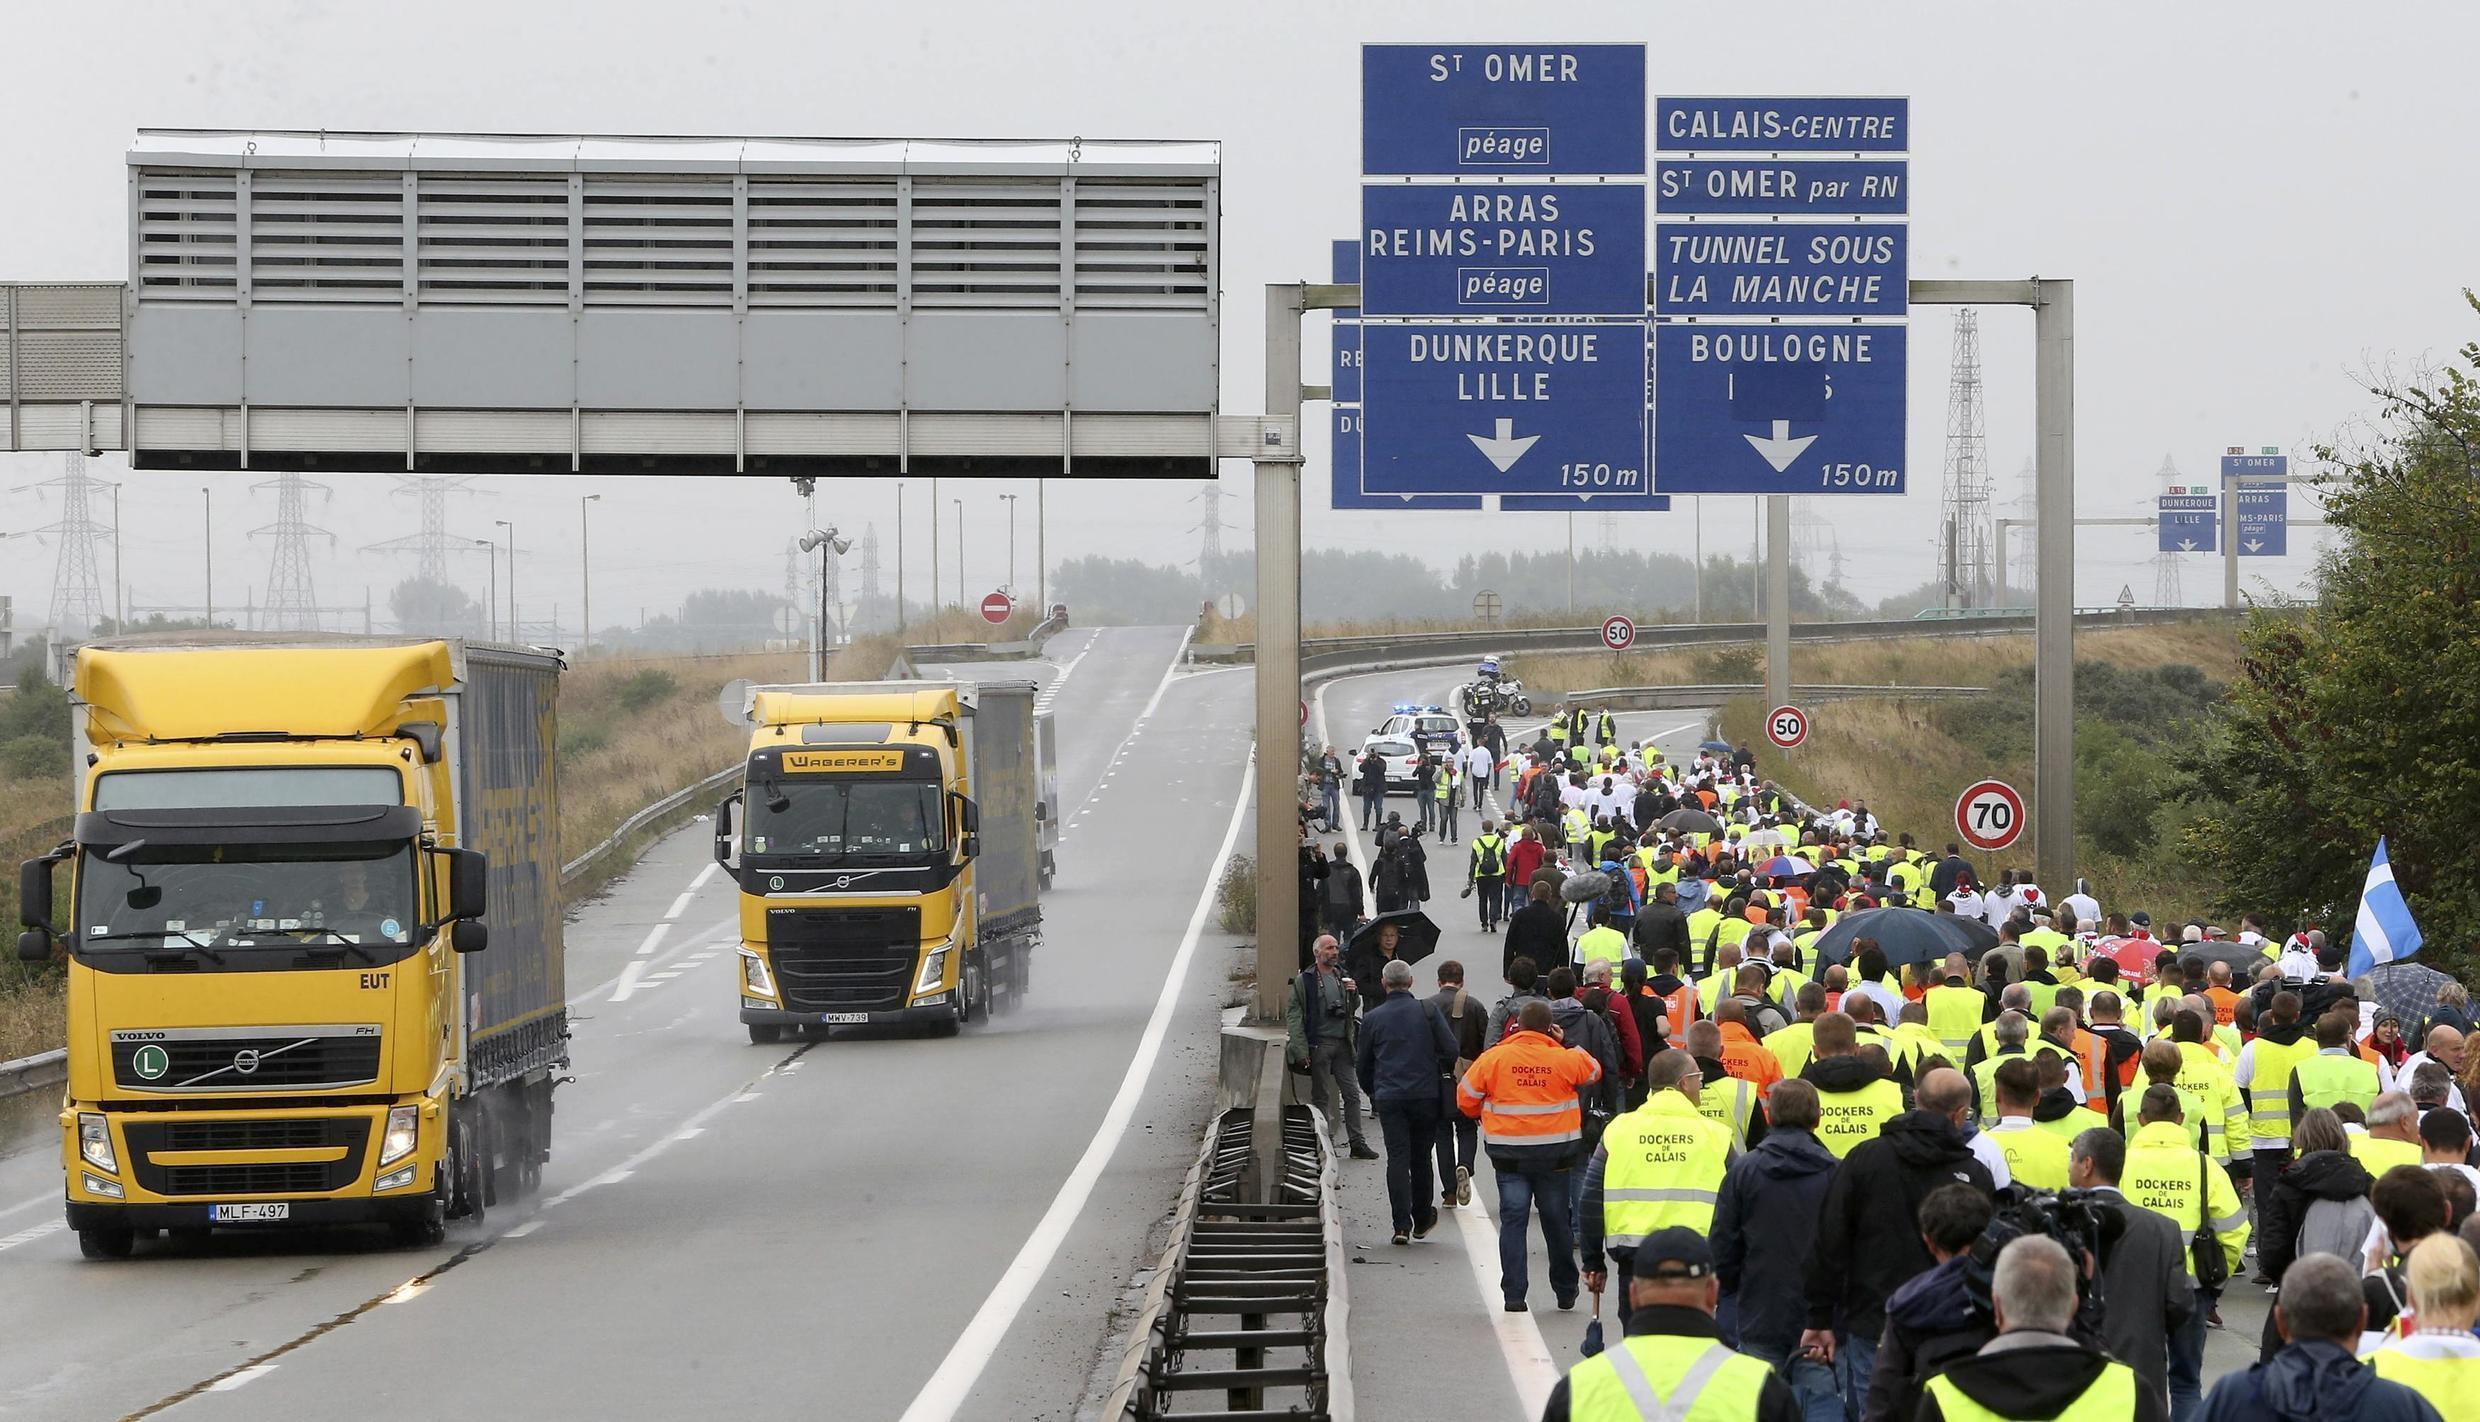 Harbour workers, storekeepers and residents marched on the motorway in protest against the migrant situation in Calais on 5 September, 2016.